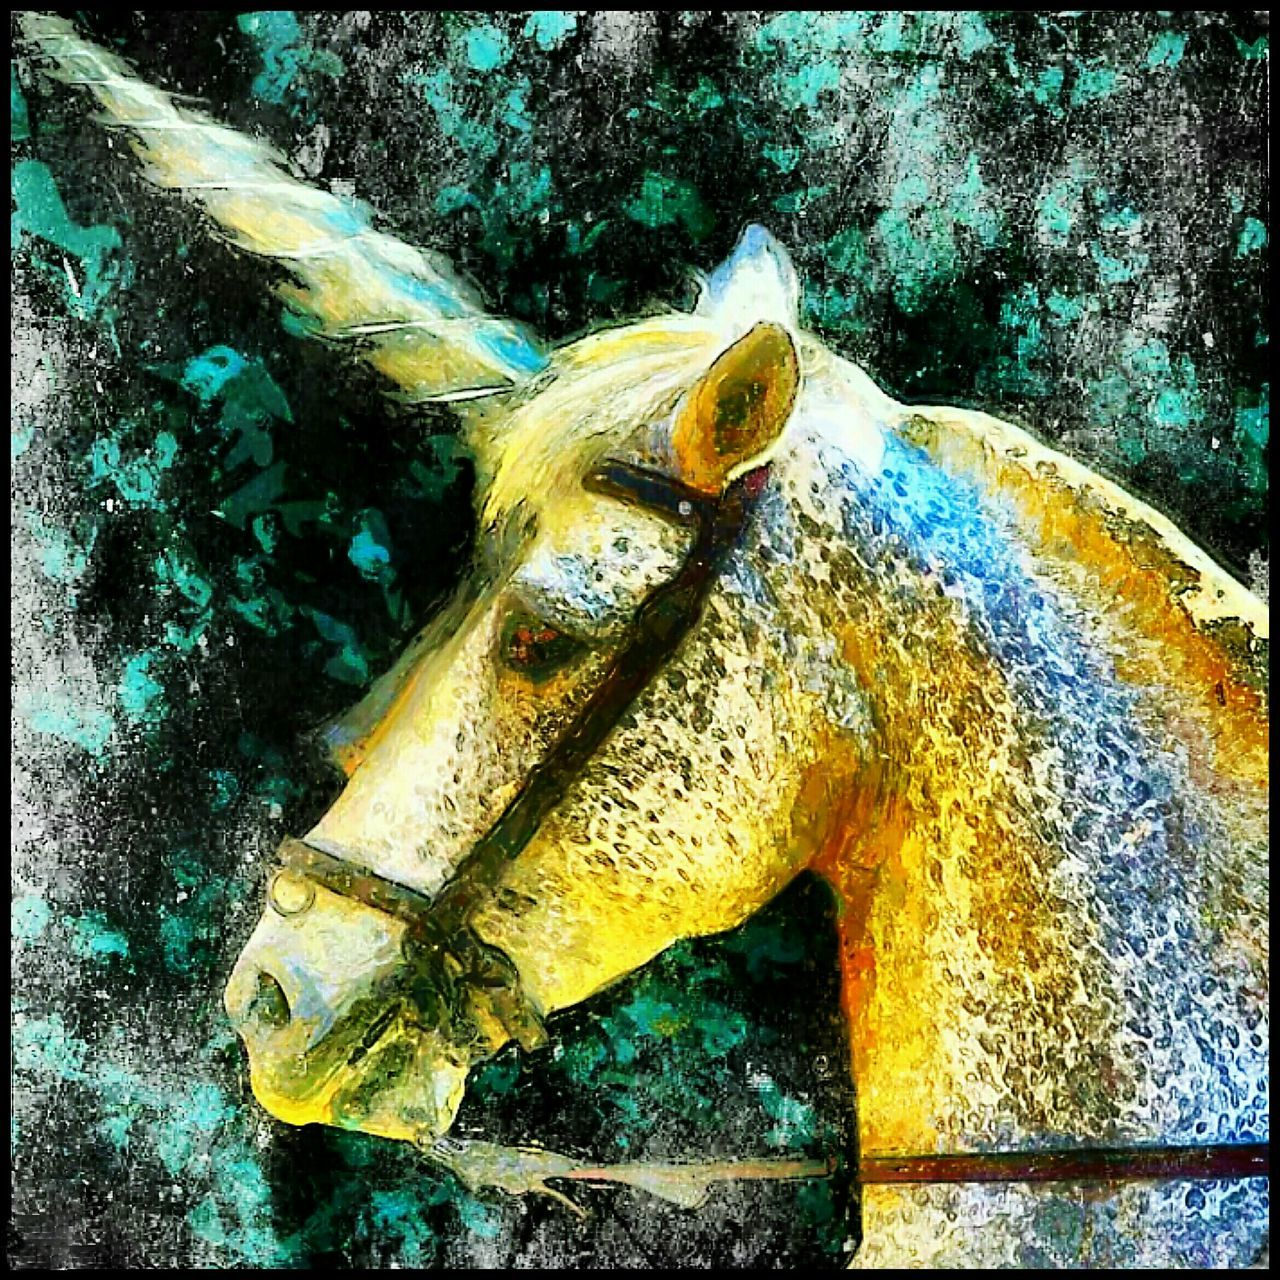 Bridled Unicorn.Unicorn Creative Apps Android Creative CreativePhotographer Filtered & Fidoodled Effects & Filters Tablet Art Phone Art Picsaypro  Painter Androidography Android Creative Android Art Pixtortionist Art Pixtortion Bridled Unicorn Awehaven Art NEW BLOG ADDRESS http://awehavenart.blogspot.ae/?m=1